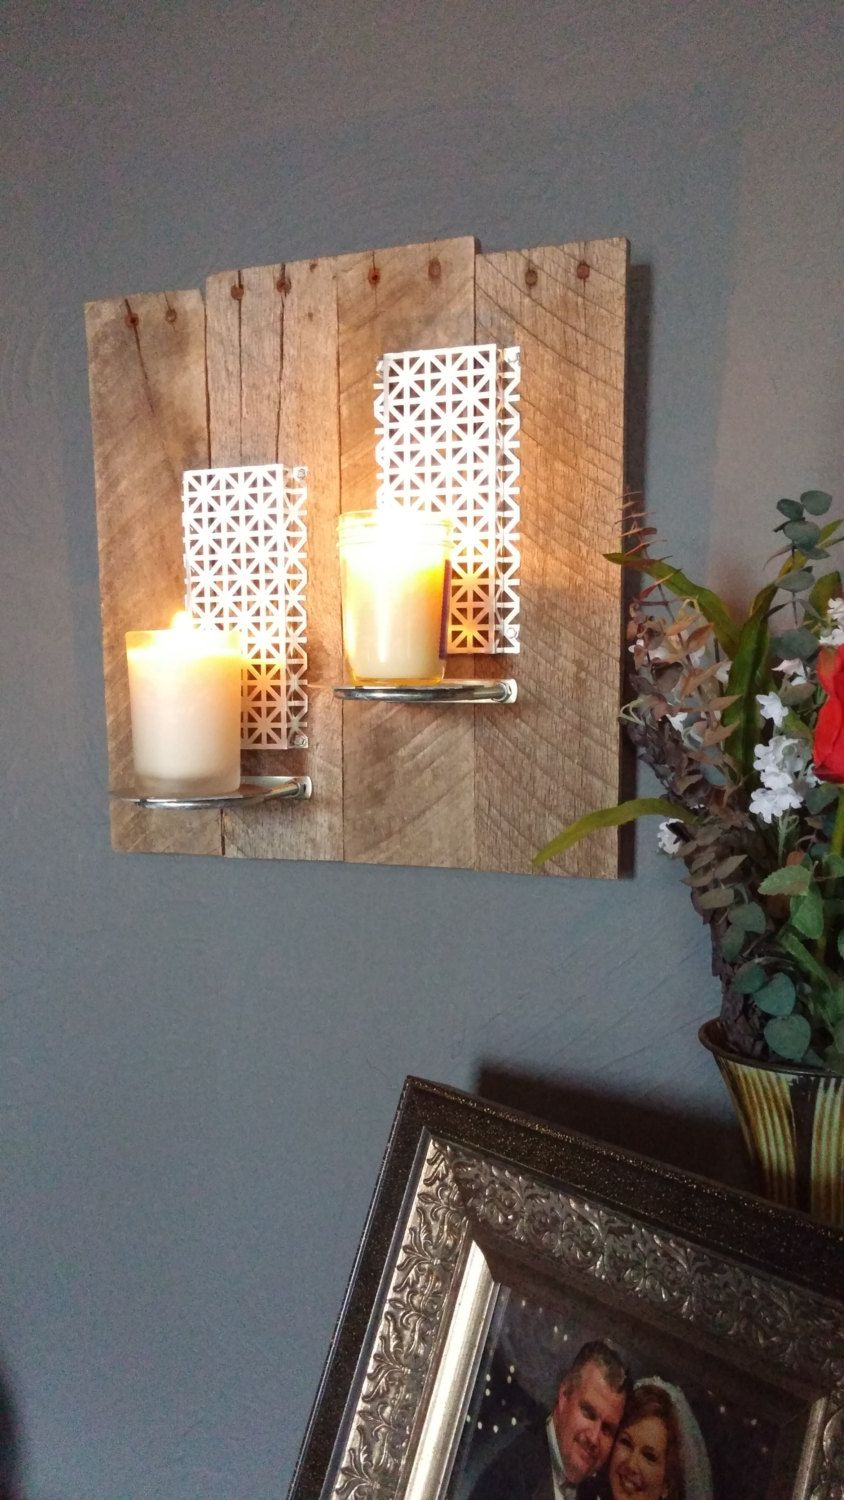 Reclaimed Wood Art - Wall Sconce. Pallet Wood. Rustic. Metal. Industrial. Rustic Art. Distressed Wood. Home Decor. Candle Holder by MLDesigns13 on Etsy